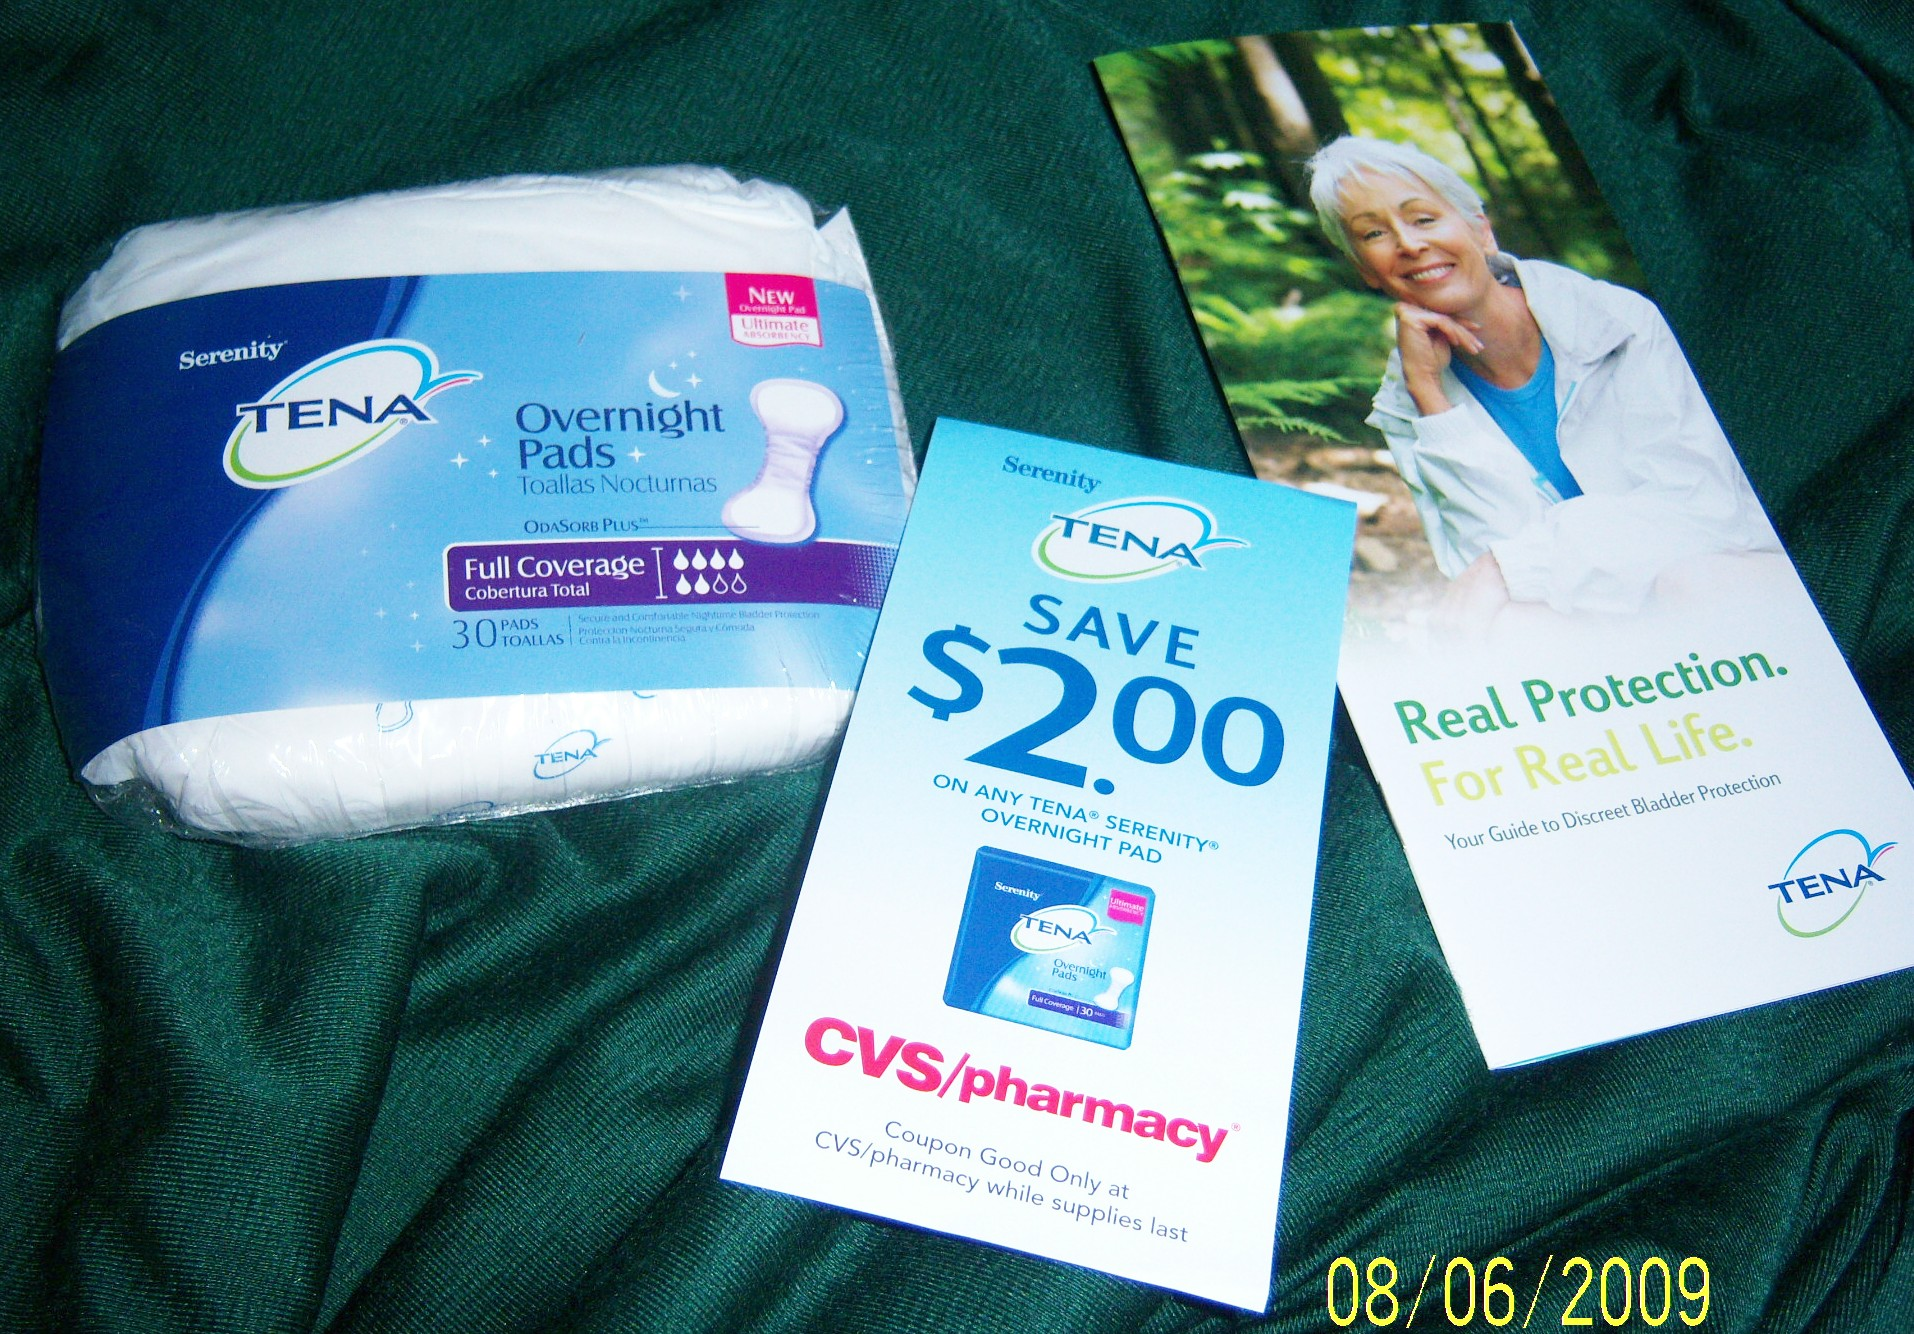 Tena overnight pad, $2 off coupon and booklet